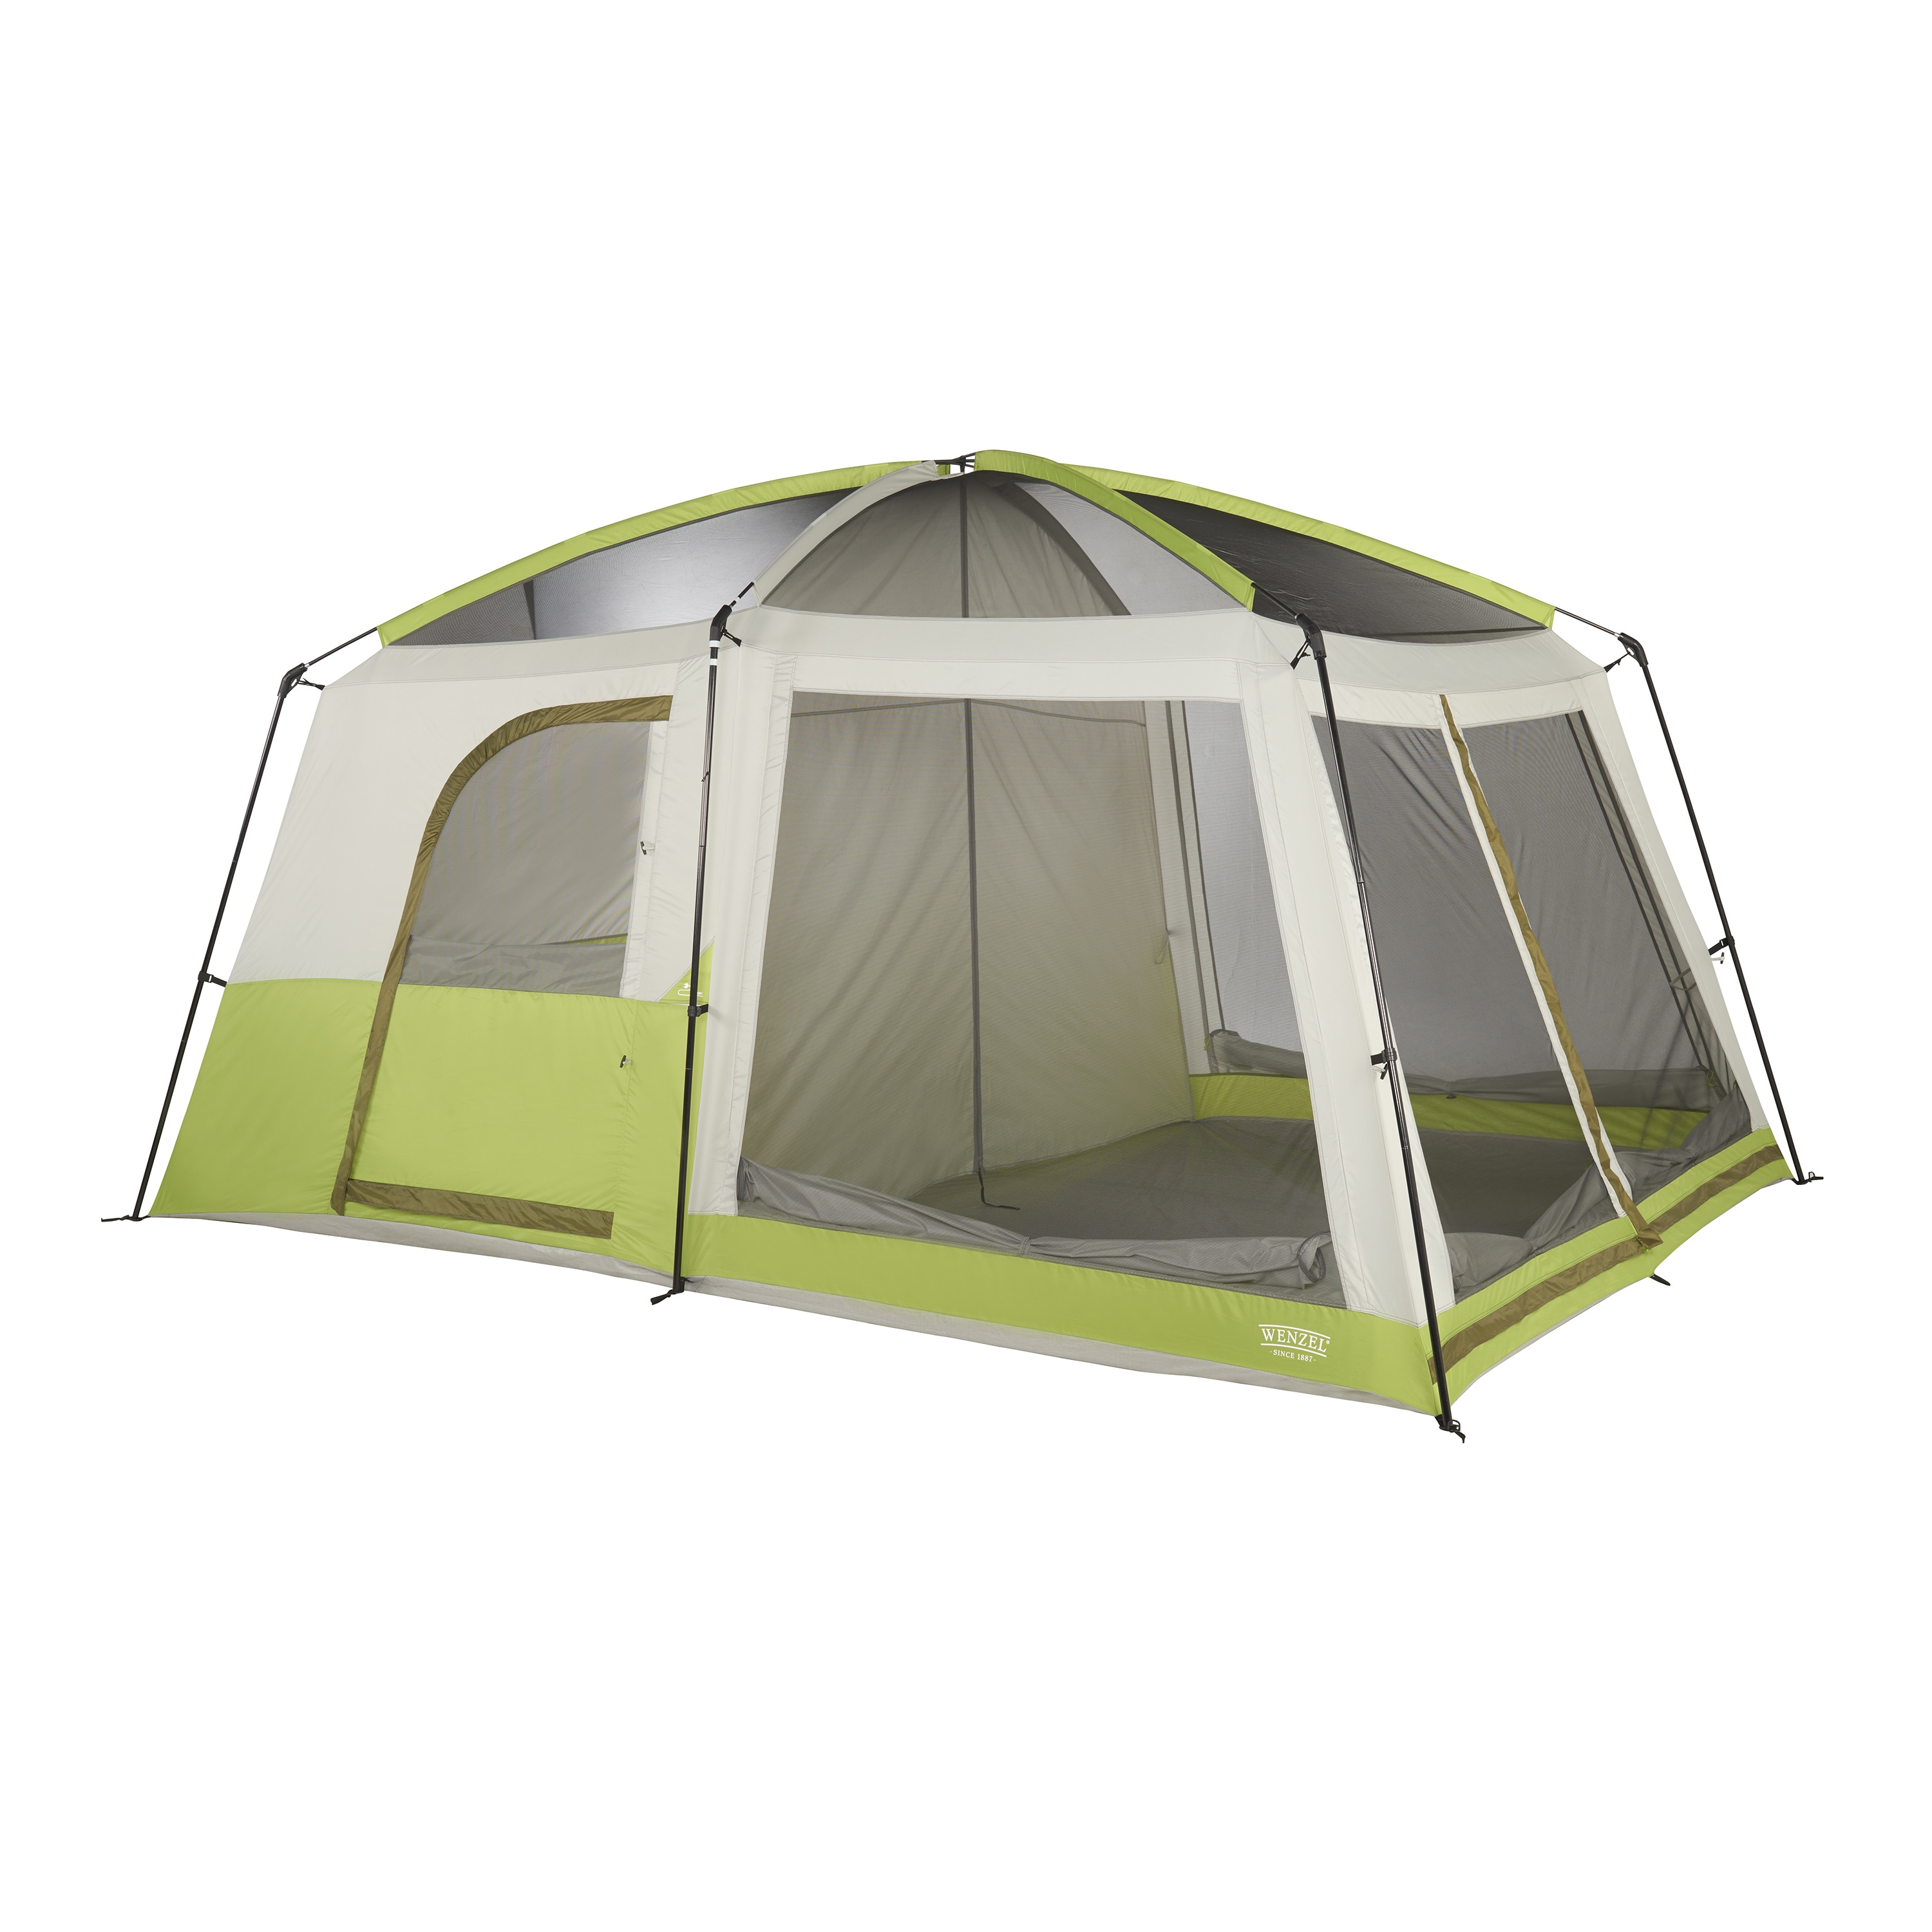 Wenzel Eldorado Green 8-person Water-resistant Cabin Tent - Free Shipping Today - Overstock.com - 21528777  sc 1 st  Overstock.com & Wenzel Eldorado Green 8-person Water-resistant Cabin Tent - Free ...